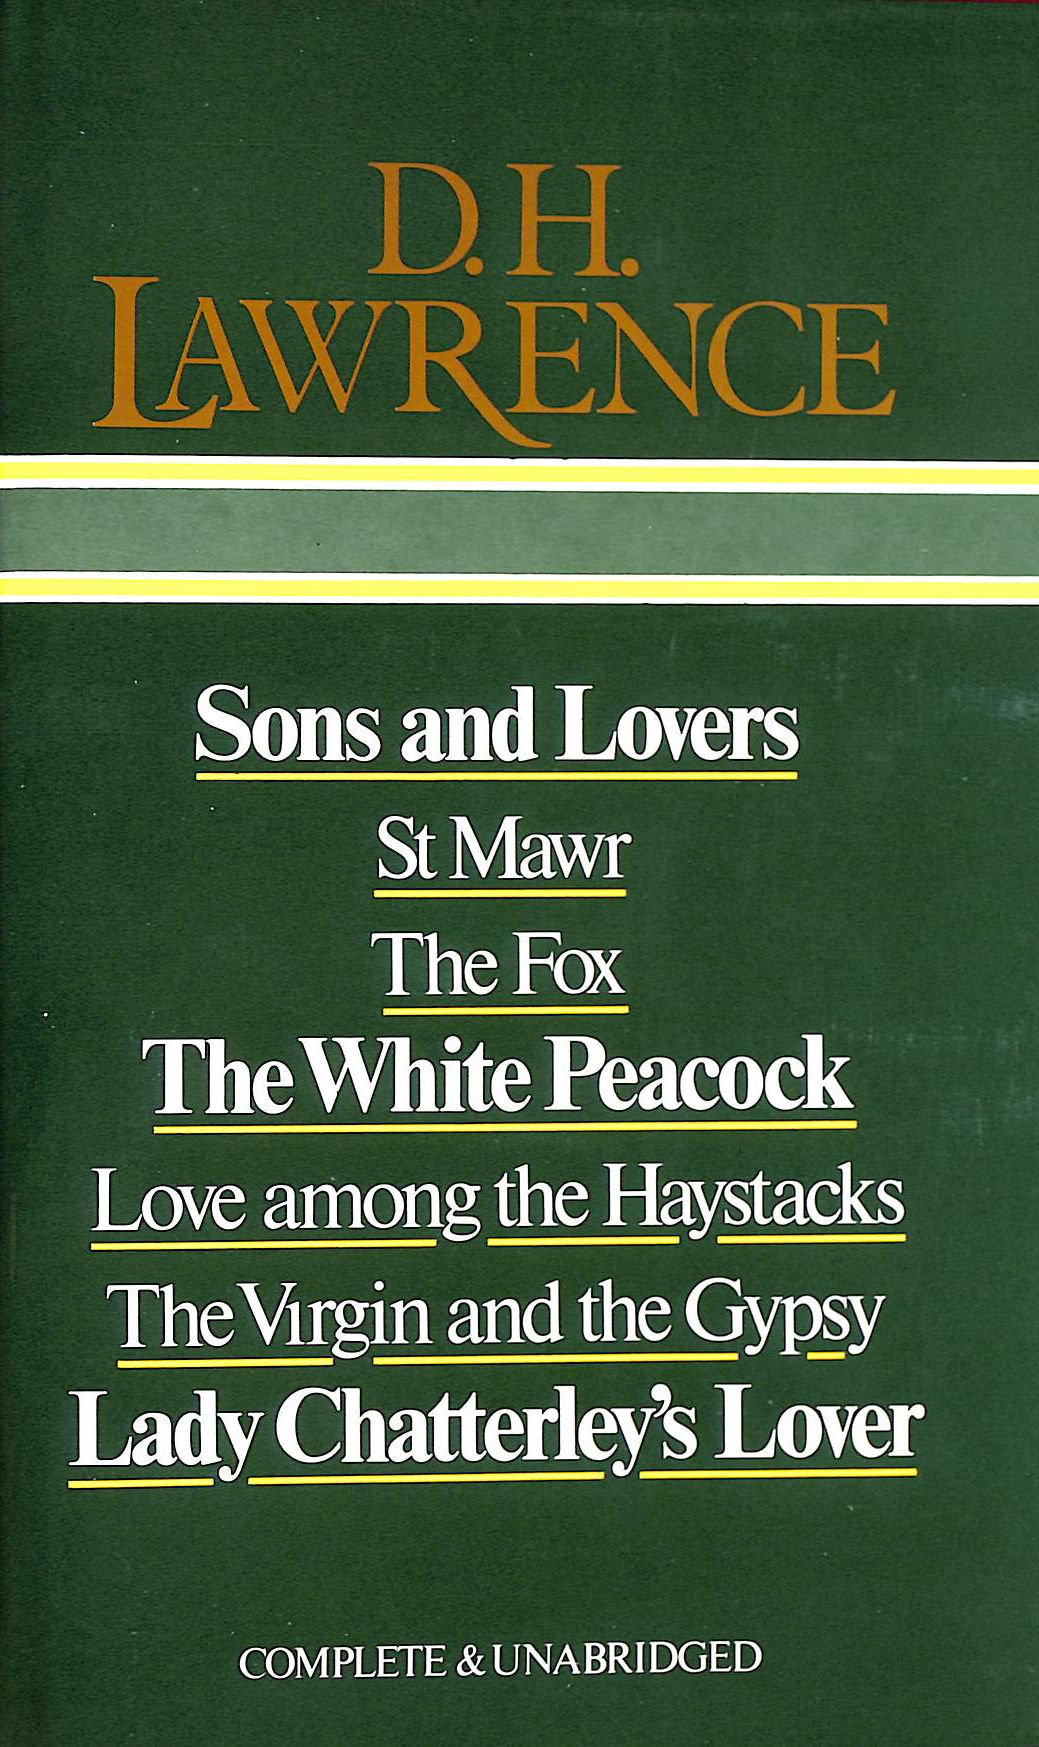 Image for D. H. Lawrence: Sons and Lovers / St. Mawr / The Fox / The White Peacock / Love Among the Haystacks / The Virgin and the Gypsy / Lady Chatterley's Lover